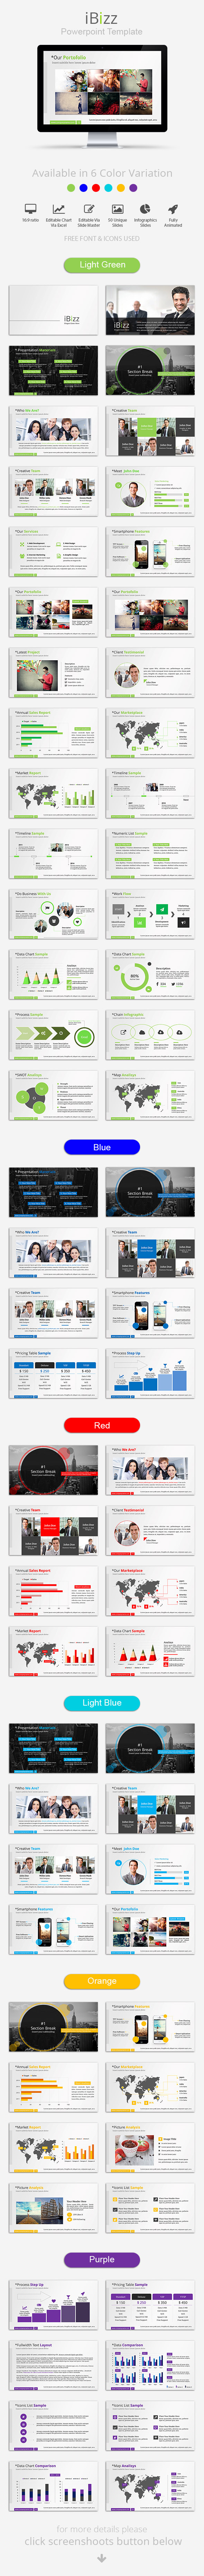 iBizz Powerpoint Template - Business PowerPoint Templates